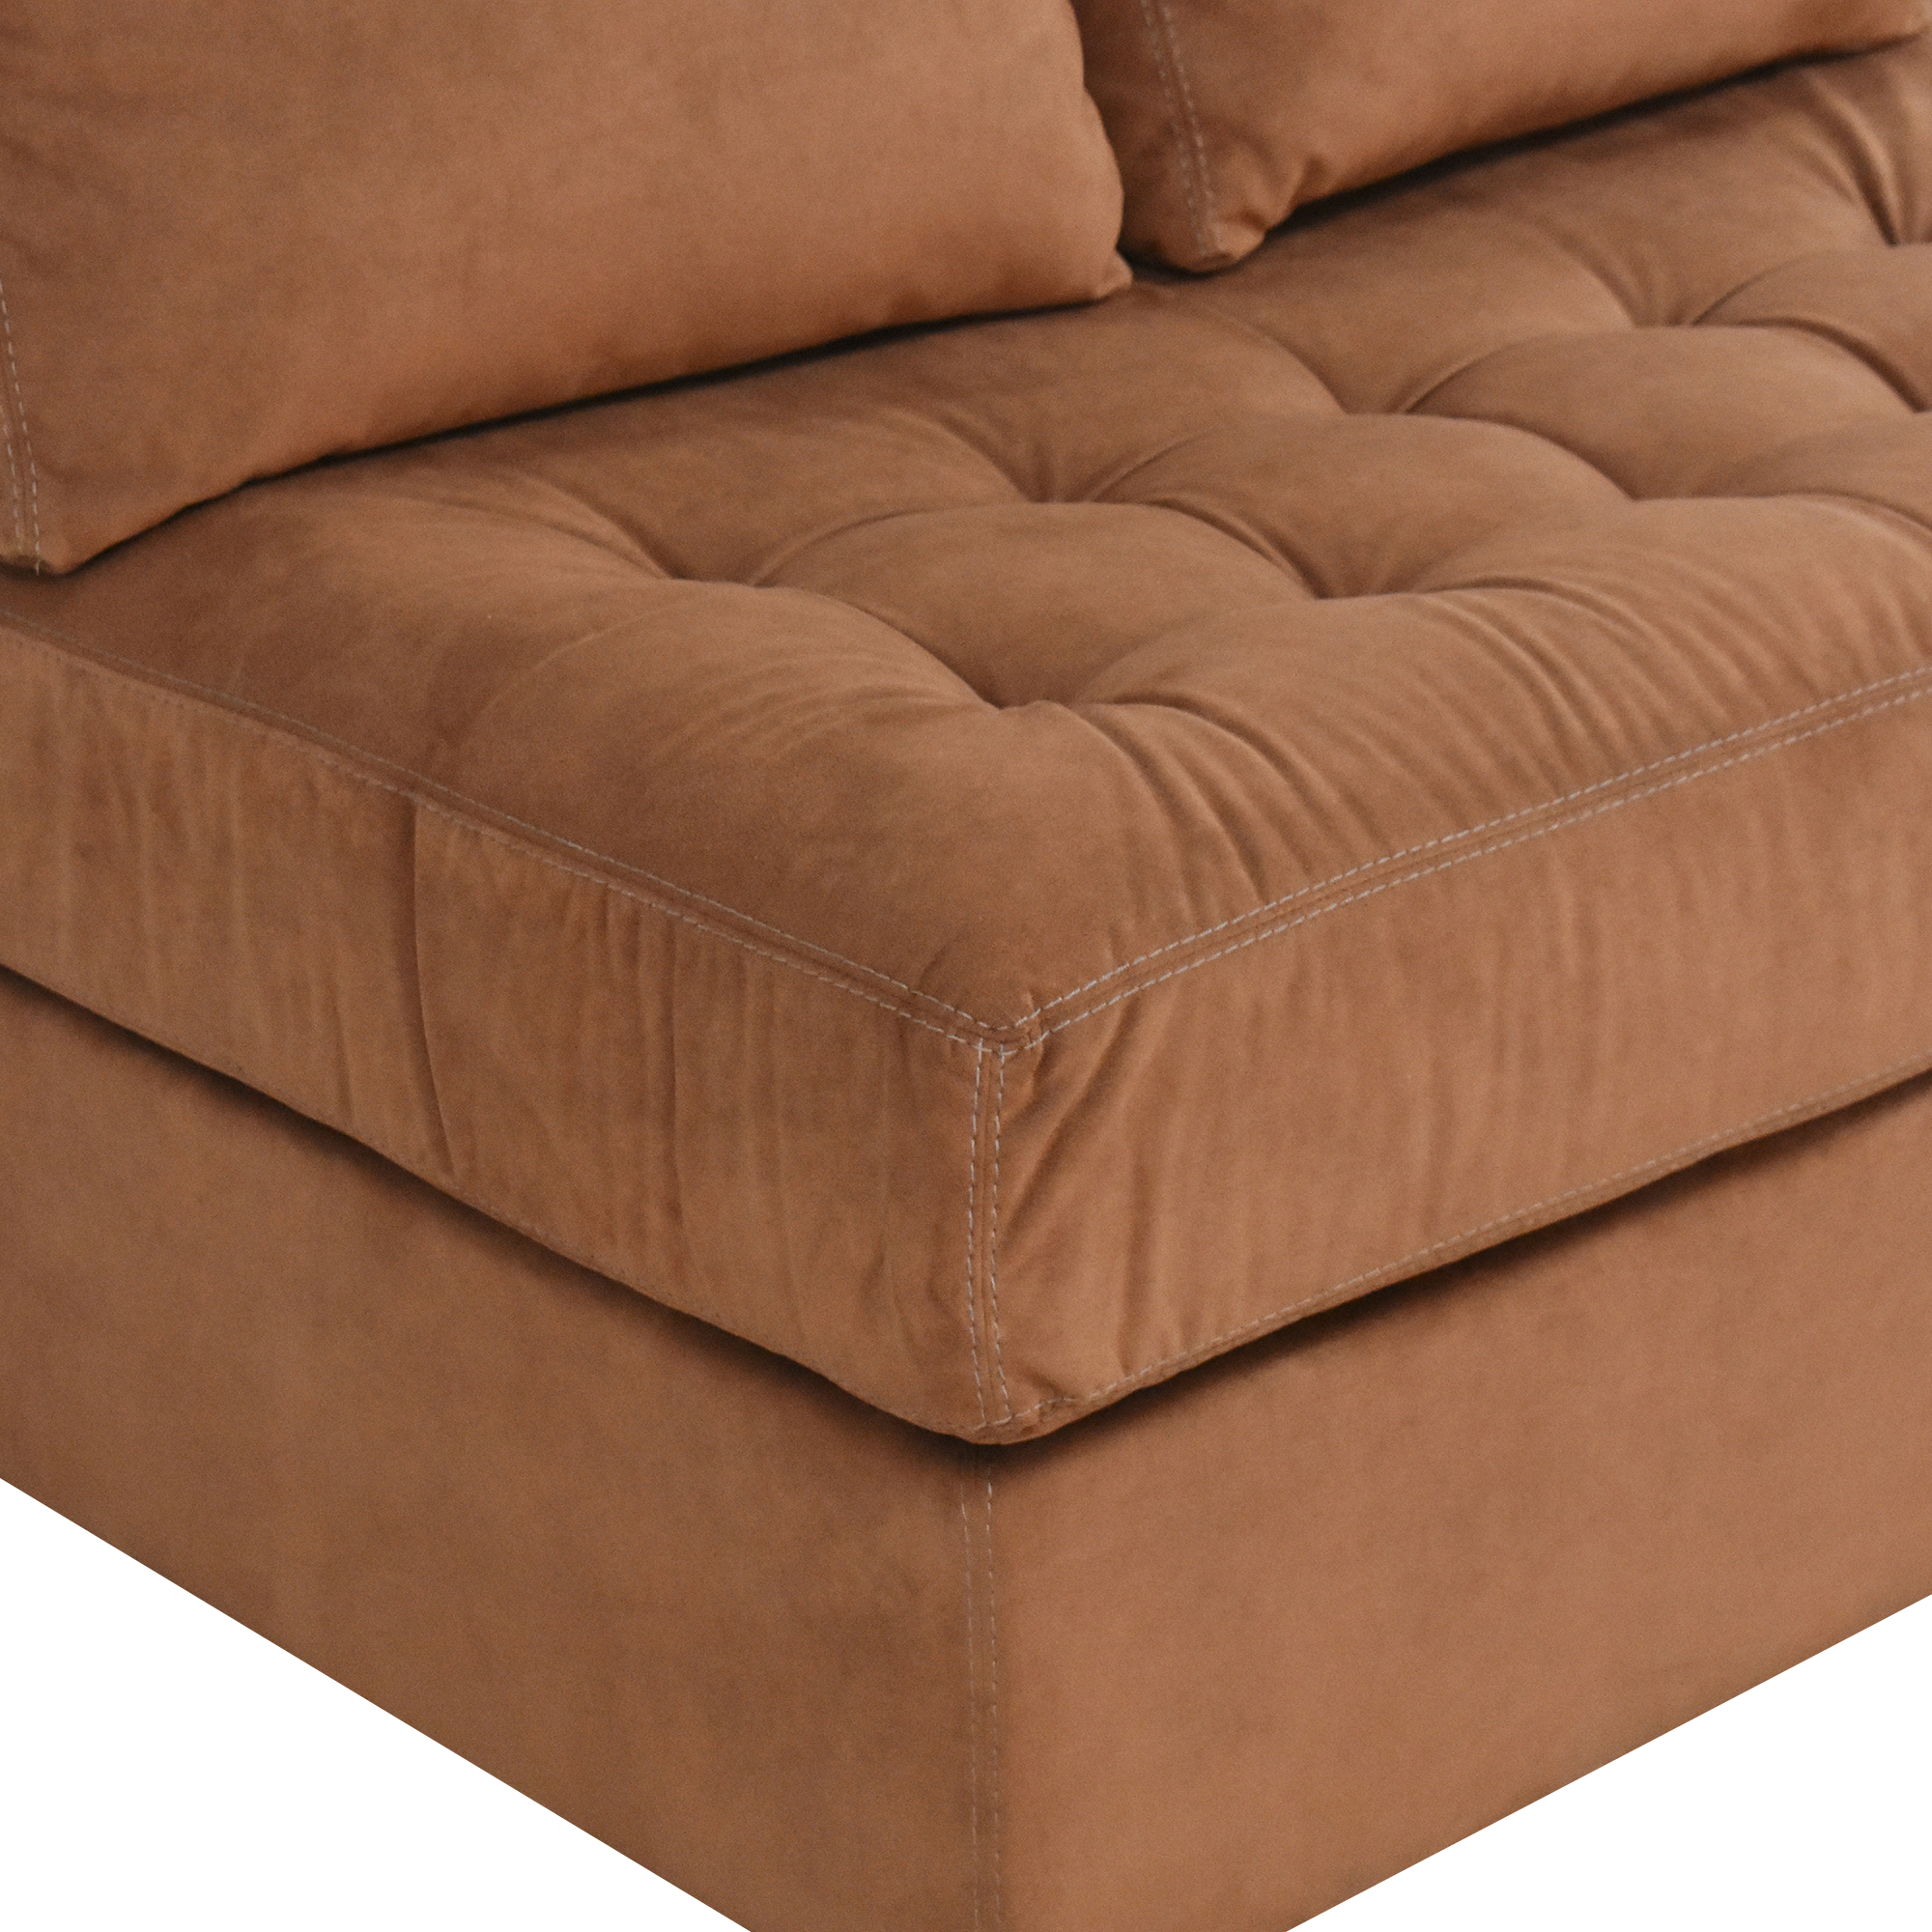 American Leather American Leather Tufted Storage Chaise discount